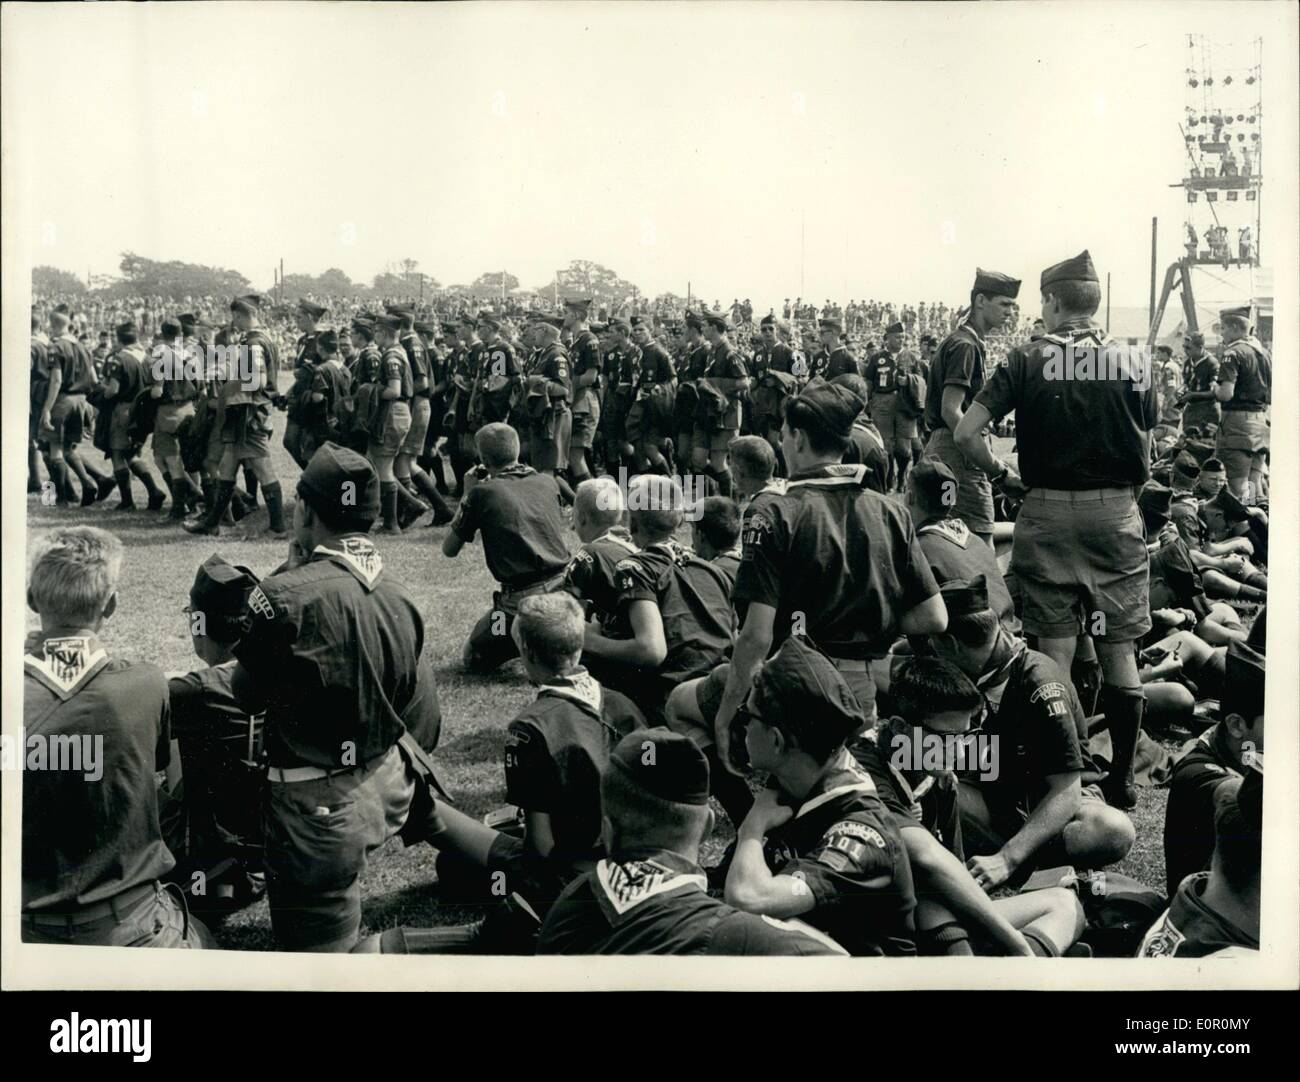 Aug. 08, 1957 - Duke of Gloucester Opens Scouting Jamboree. The World Scout Jubilee Jamboree at Sutton Coldfield, England, was opened by the Duke of Gloucester, who is President of the Boy Scouts Association. After the Duke had made his speech of welcome he drove round the ranks of 35,000 Scouts from 82 countries and toured the camps in which they are living. Picture Shows:- American Scouts at Camp Sutton on opening day. - Stock Image